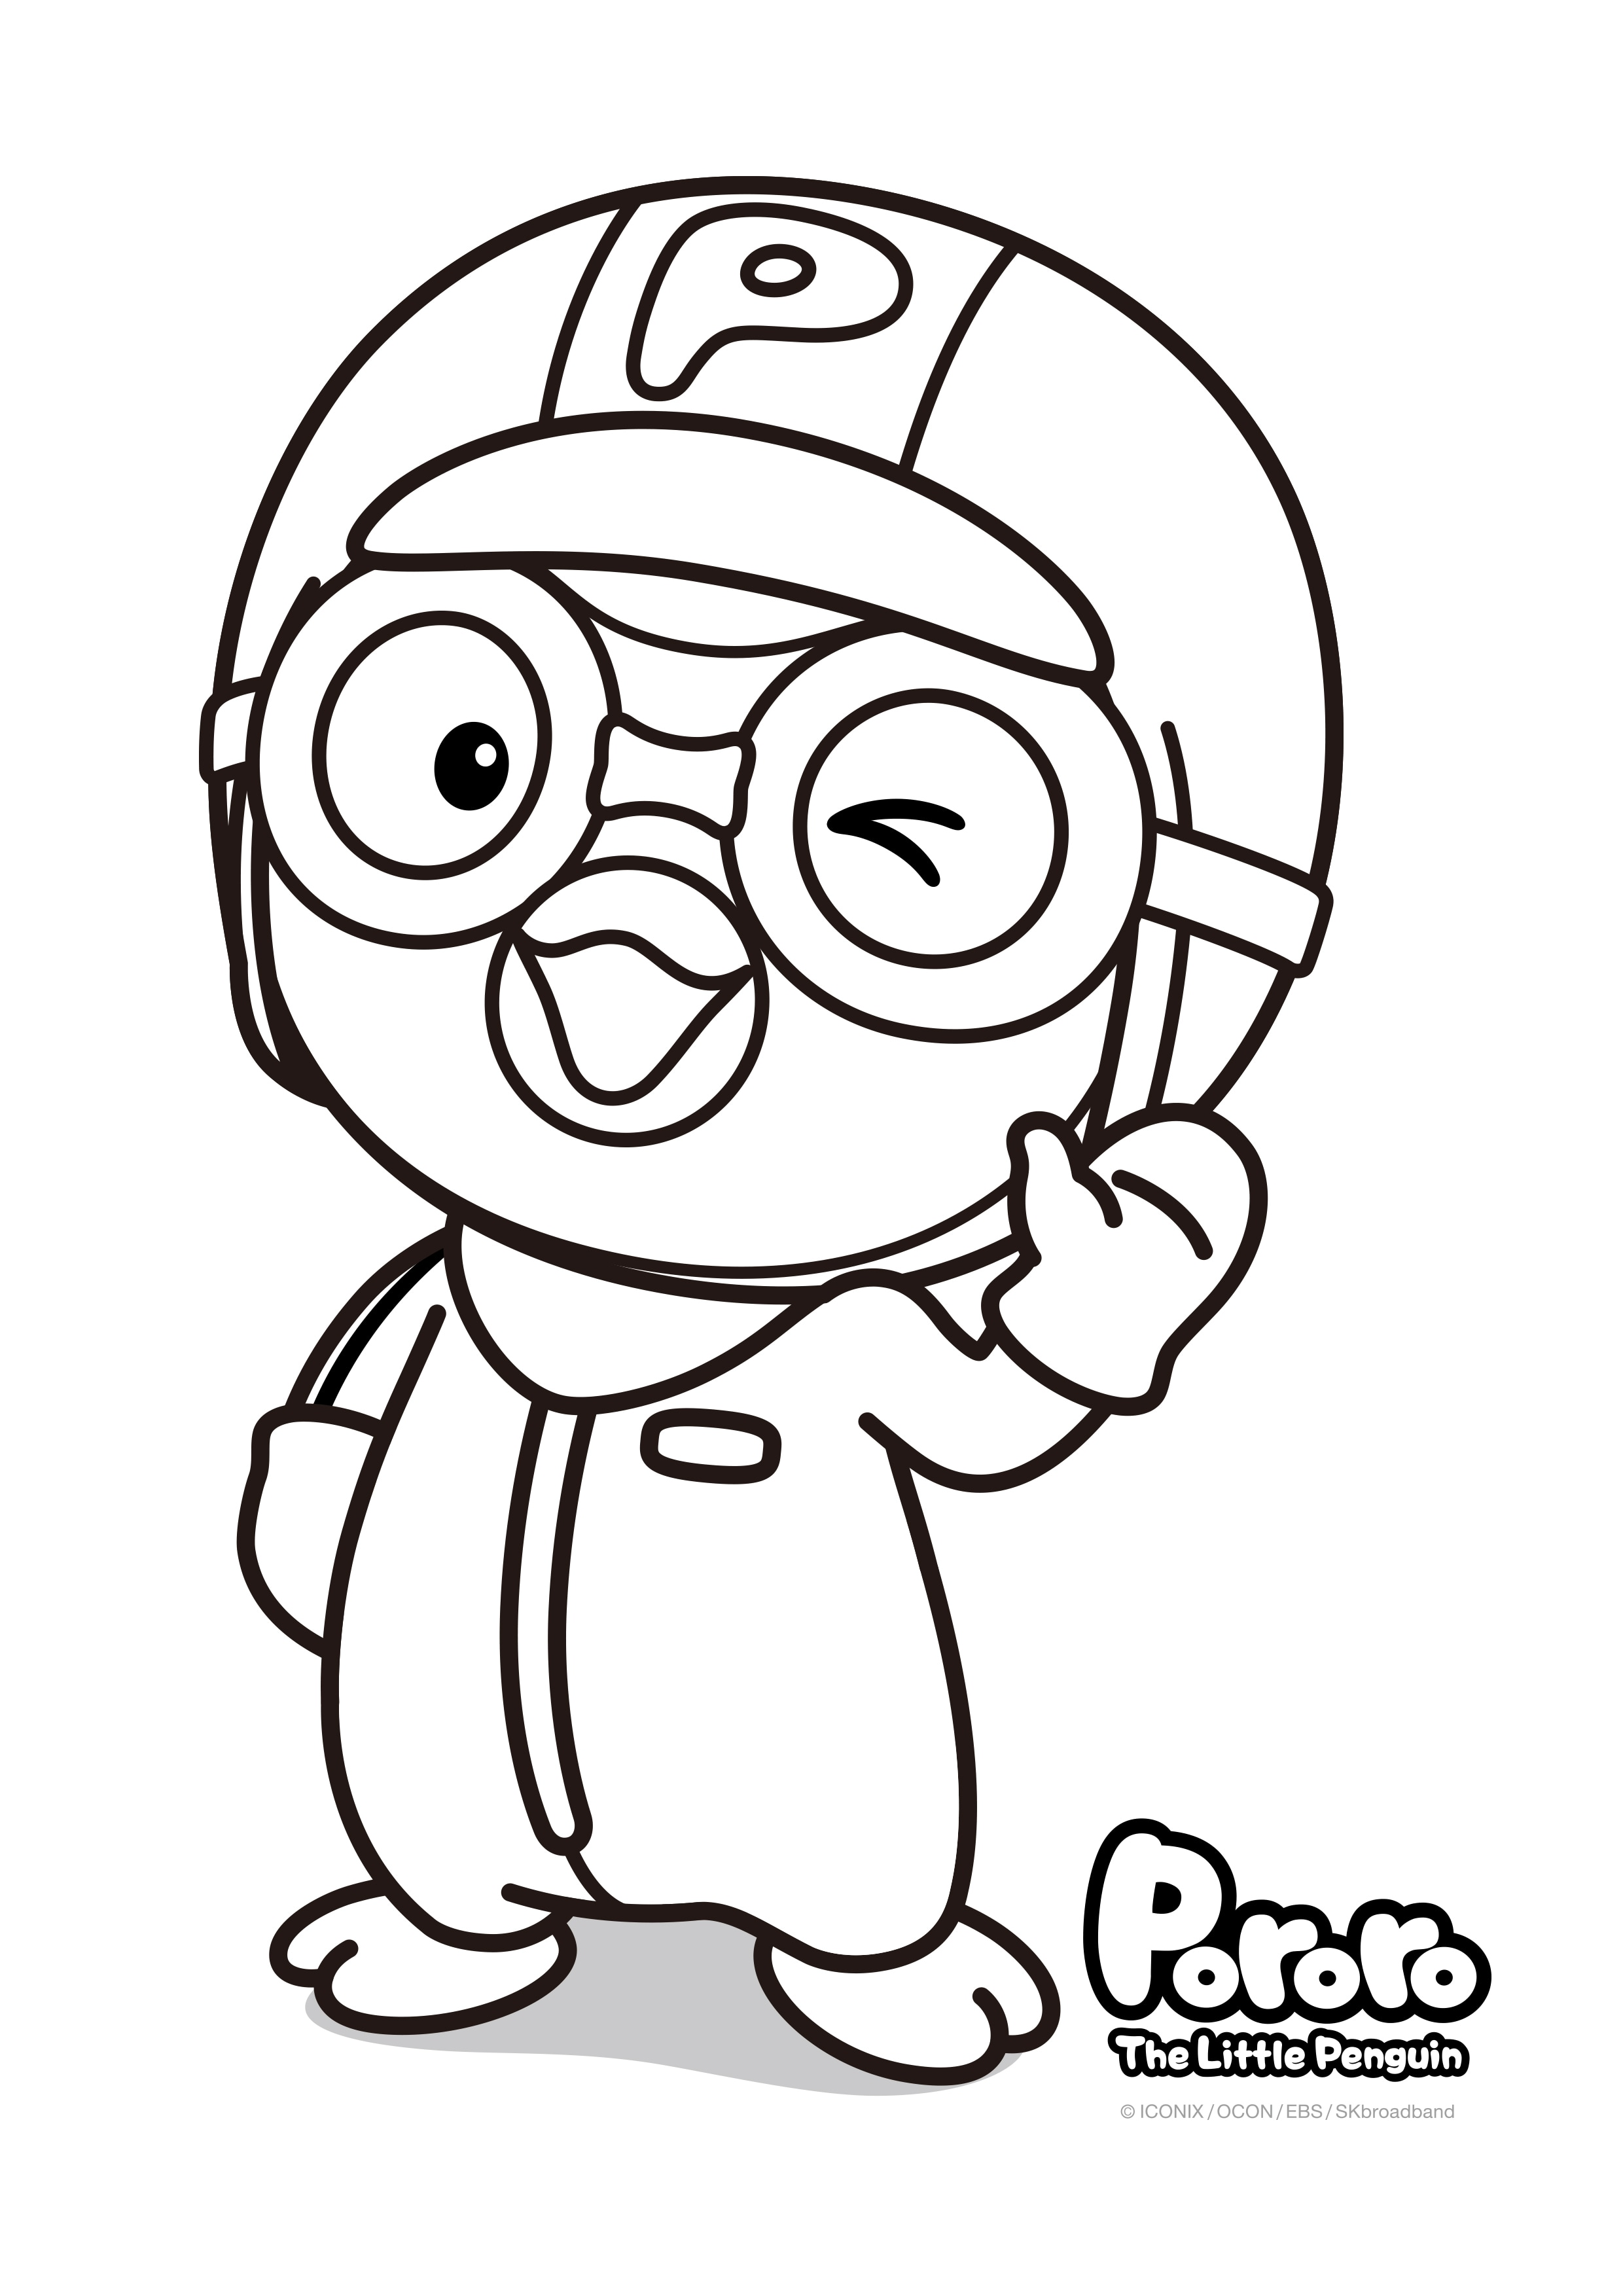 pororo the little penguin disney junior singapore